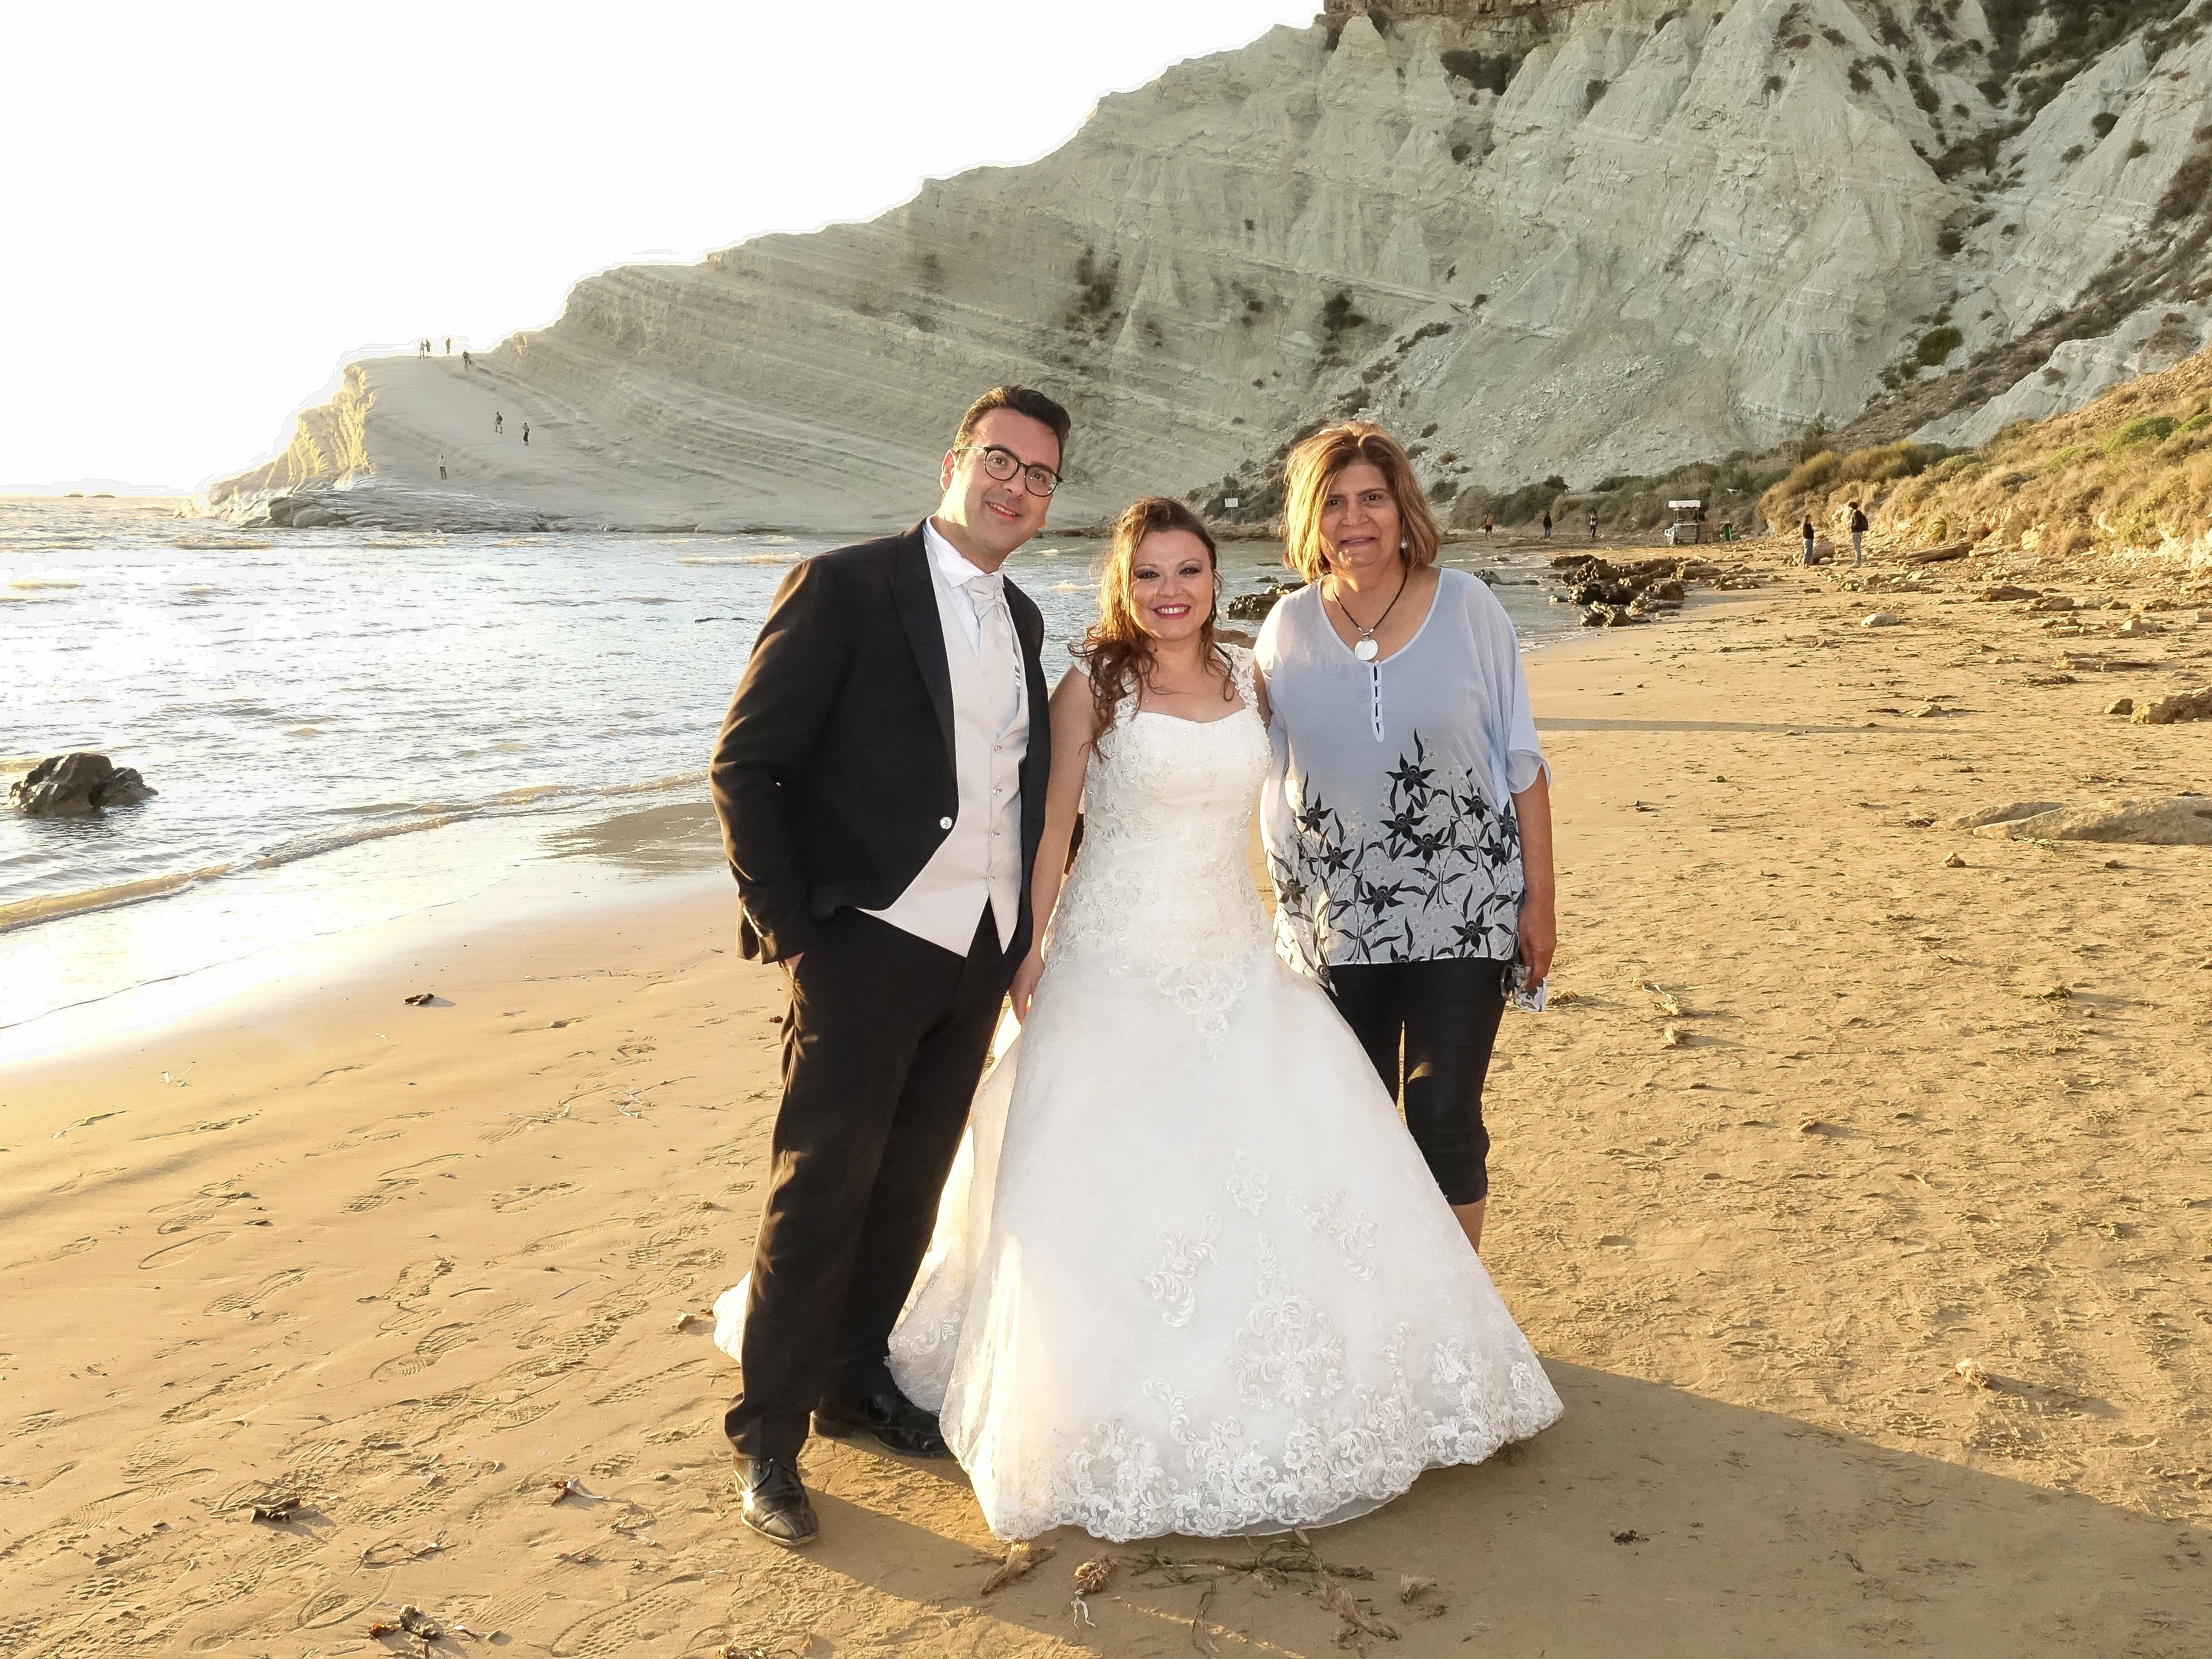 Wedding at Scala dei Turchi